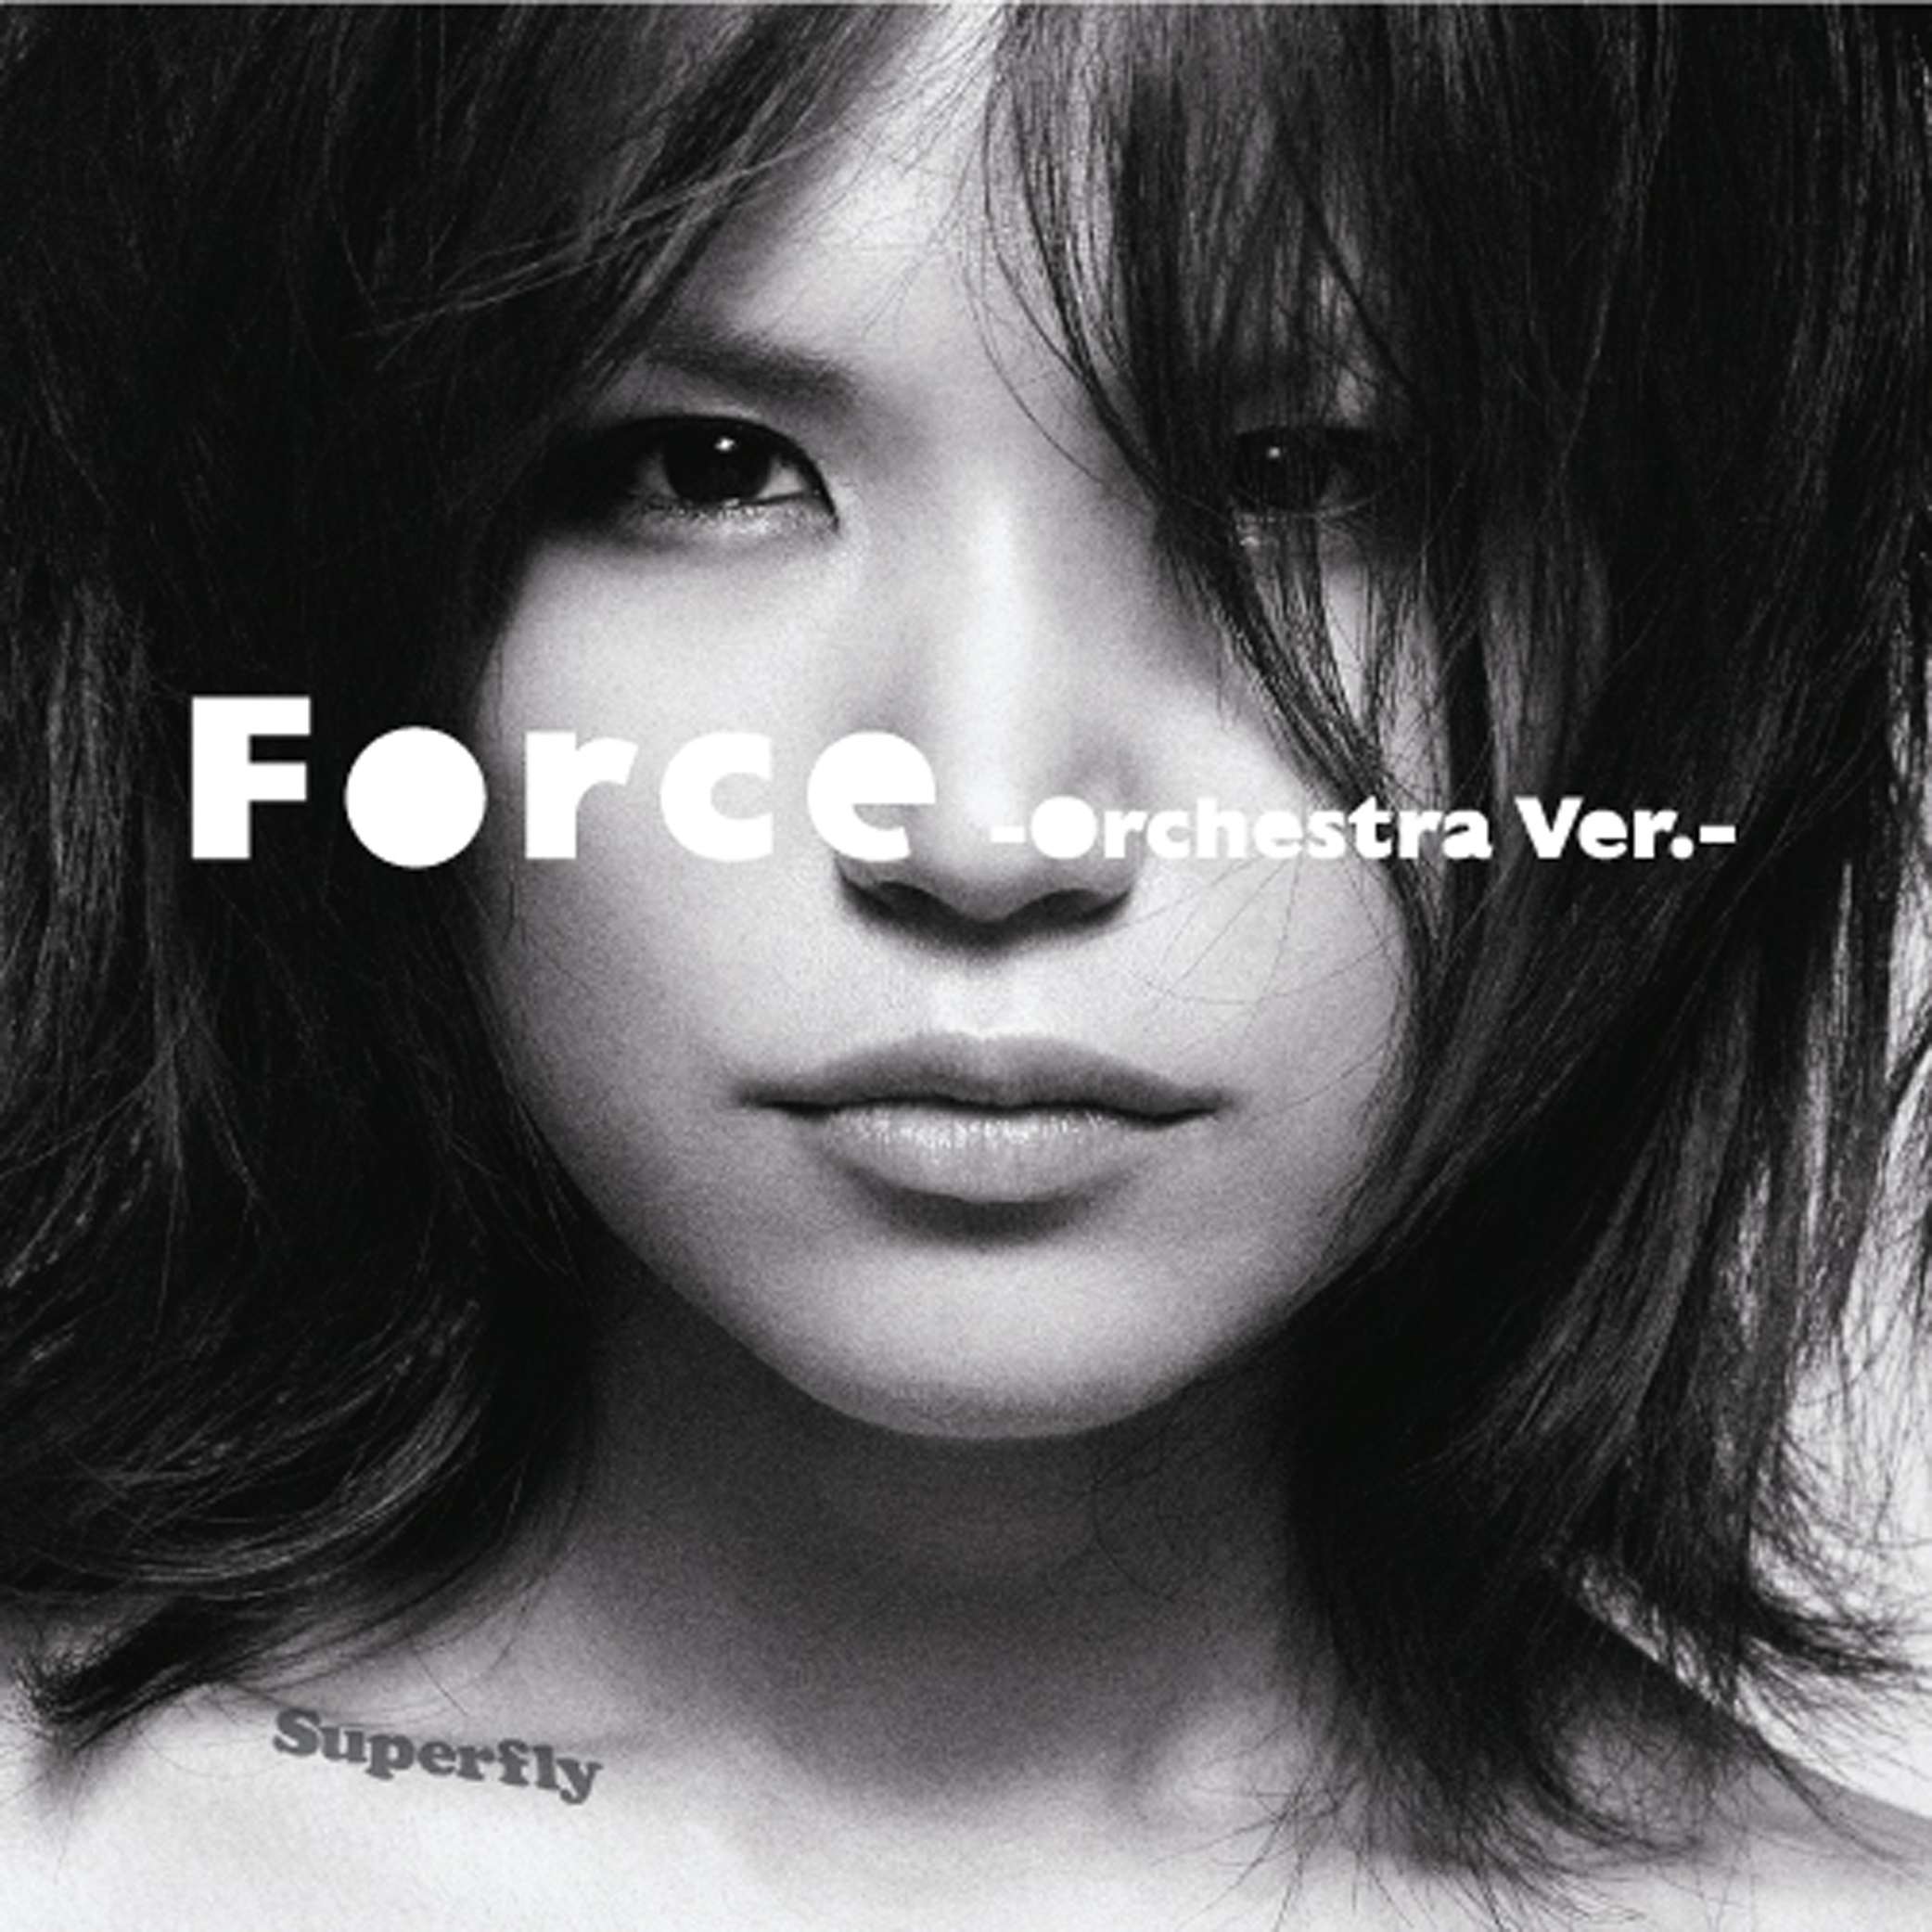 配信楽曲「Force -Orchestra Ver.-」